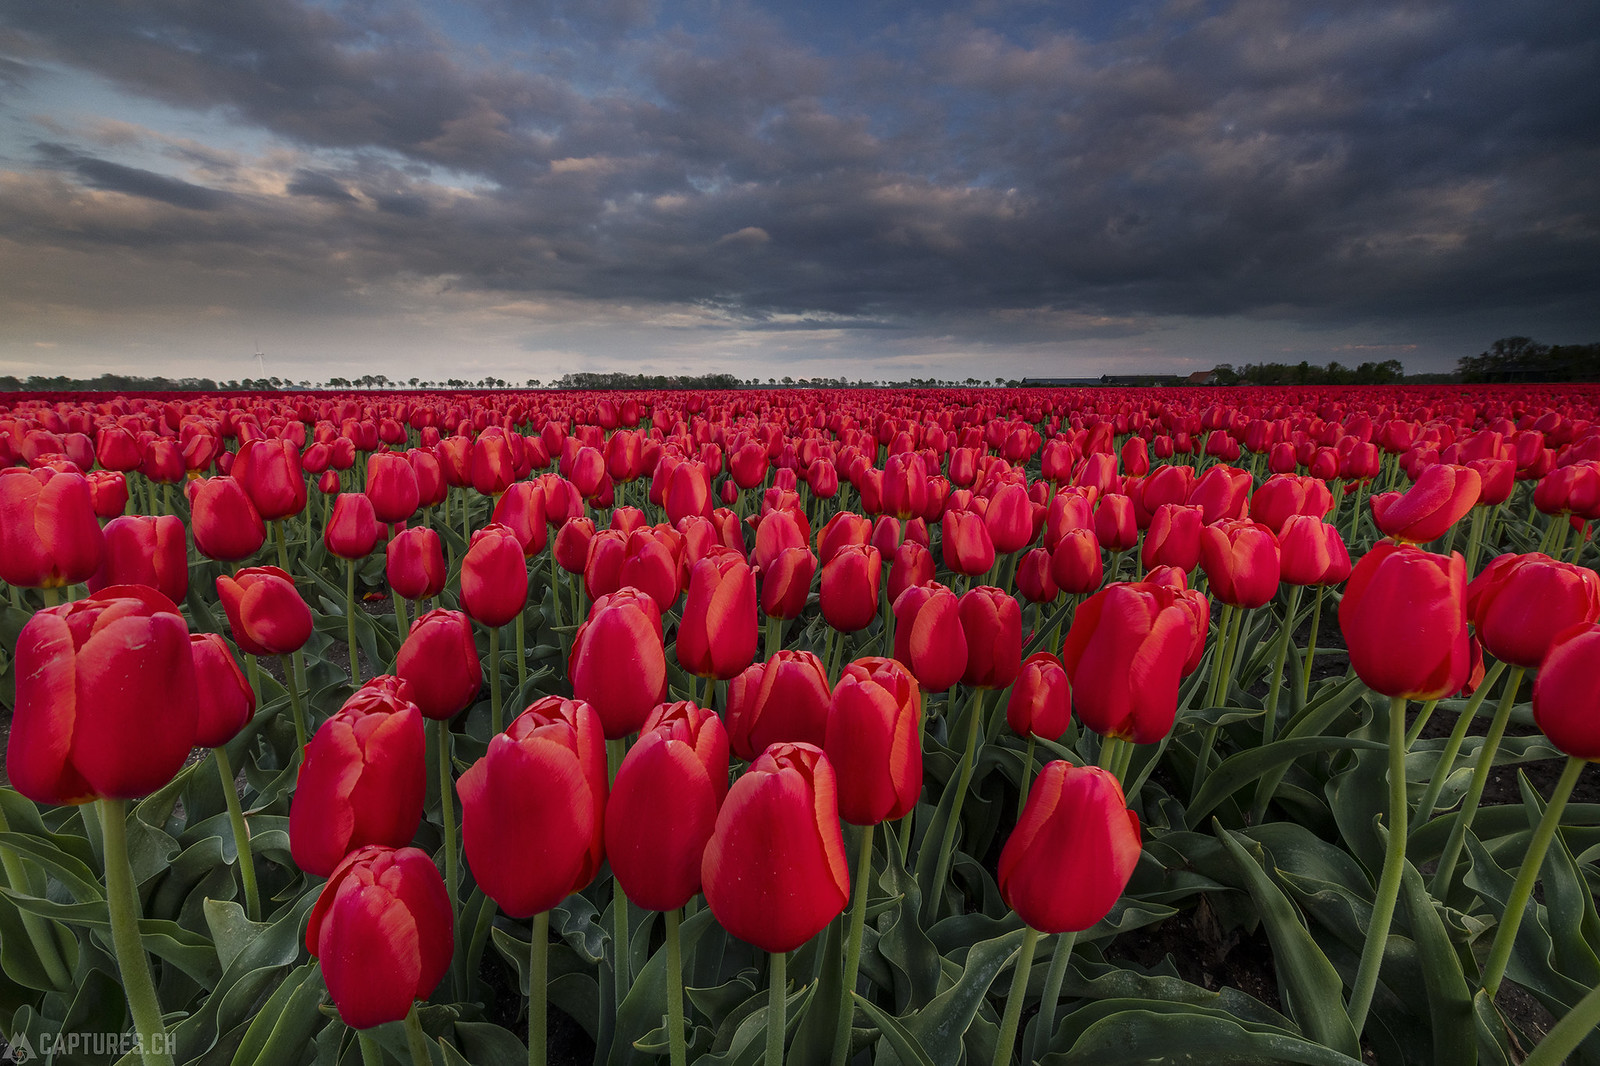 Evening light over the tulip field - Emmeloord